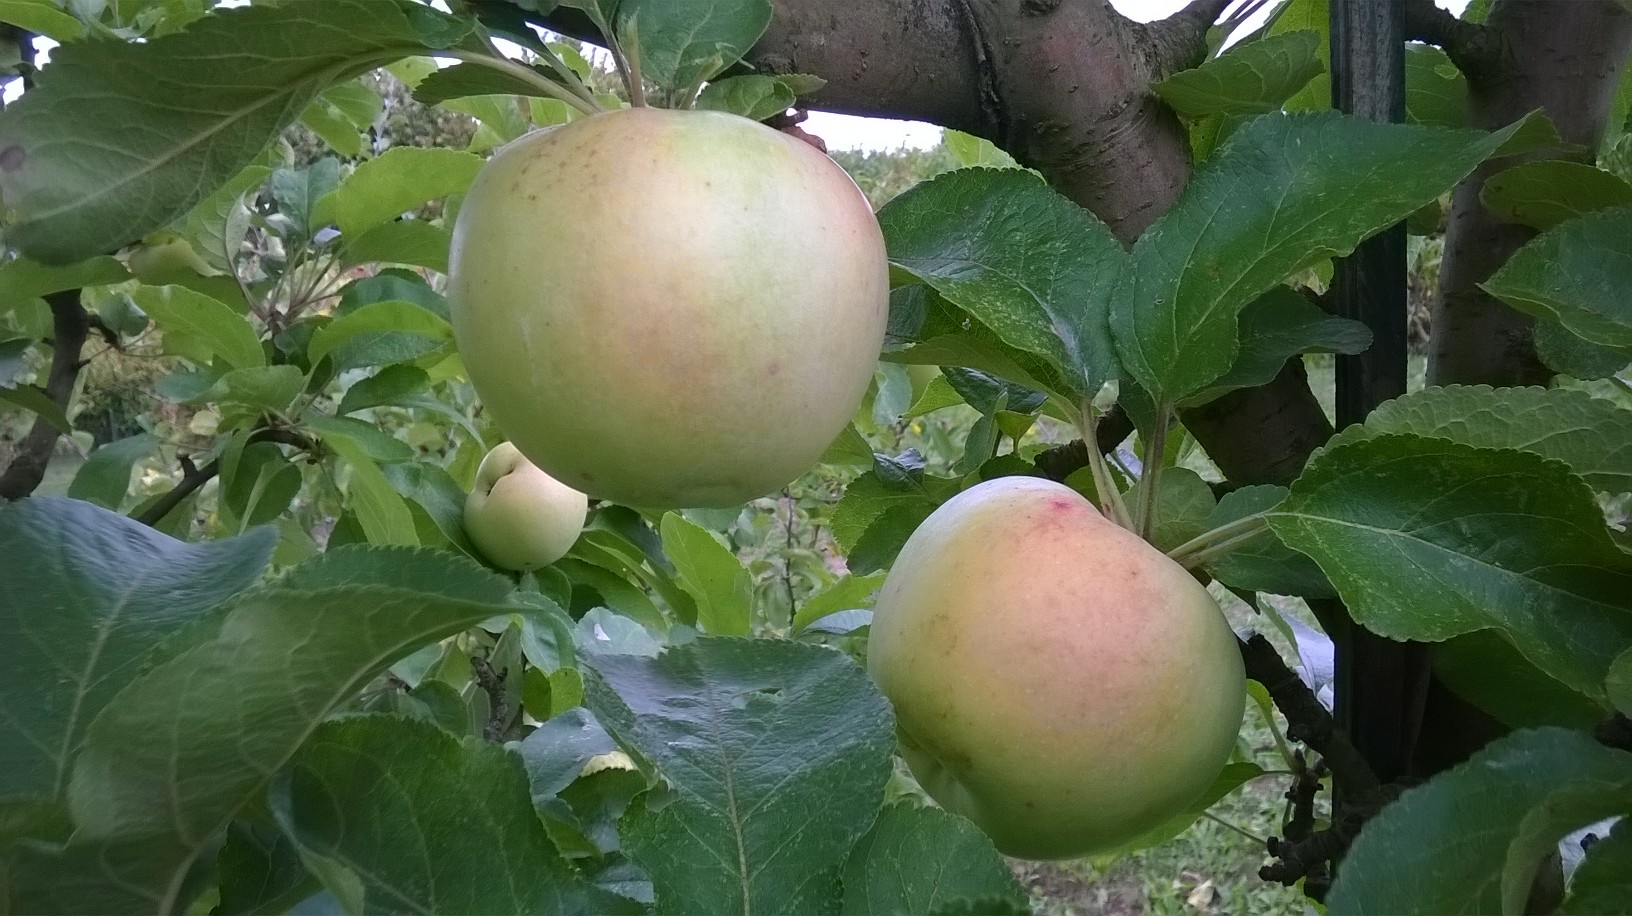 Pomme Coing